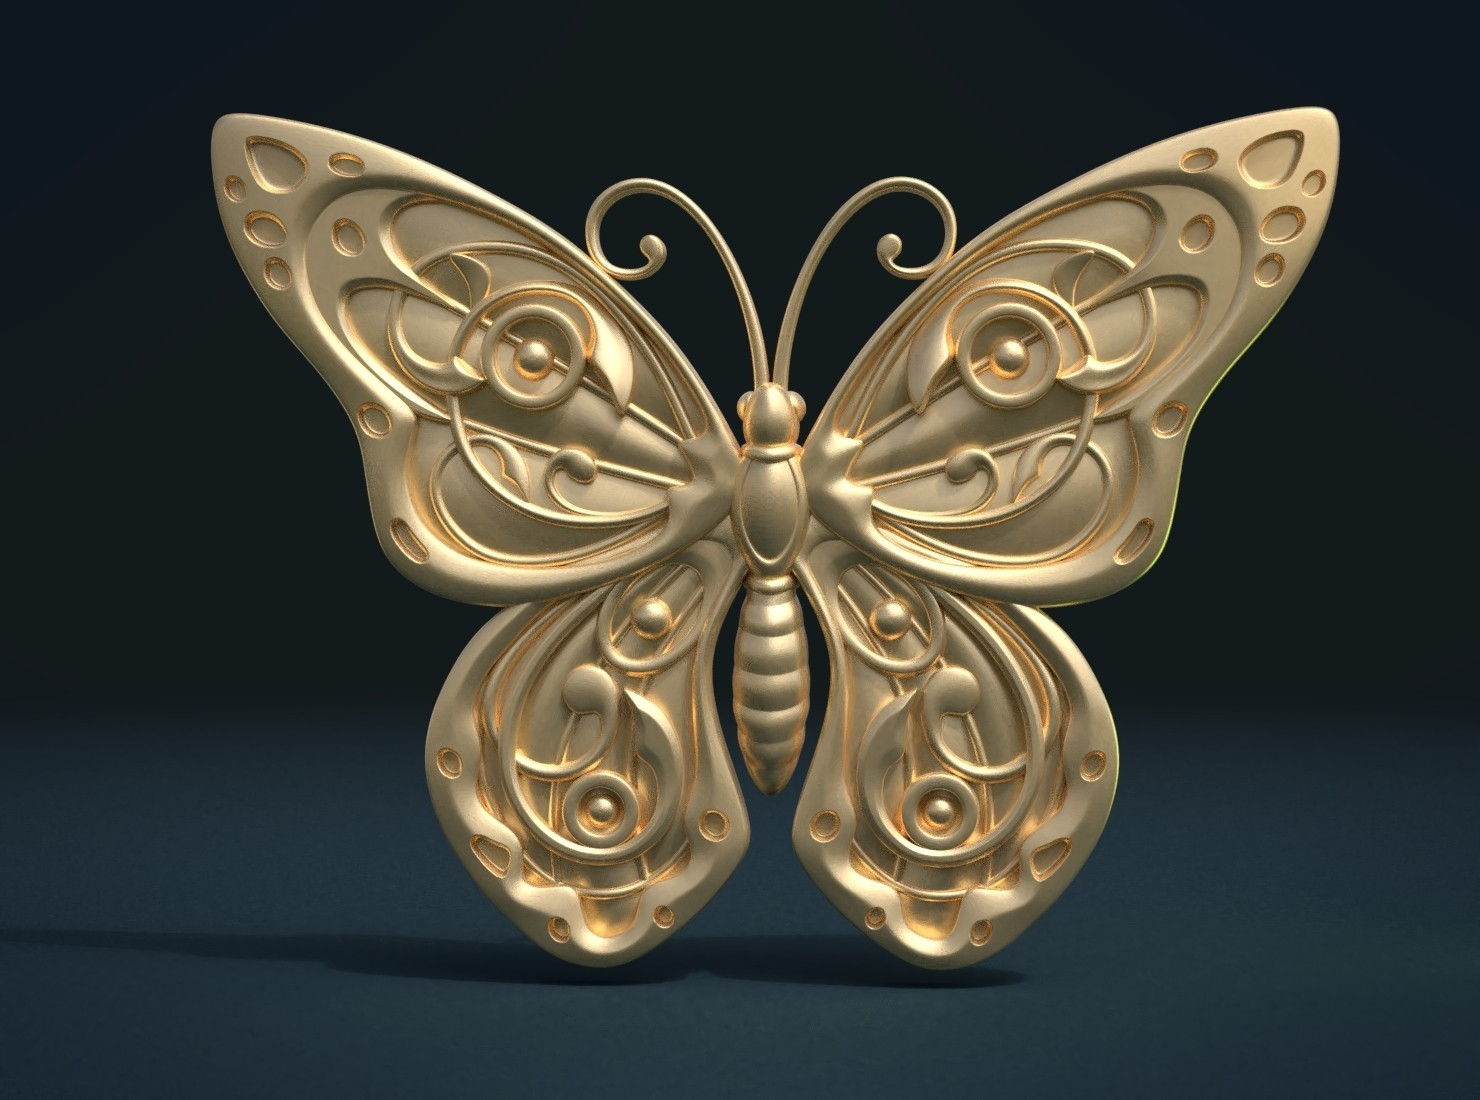 Butterfly_G_Cycles-0001.jpg Download STL file Butterfly relief • Model to 3D print, Skazok